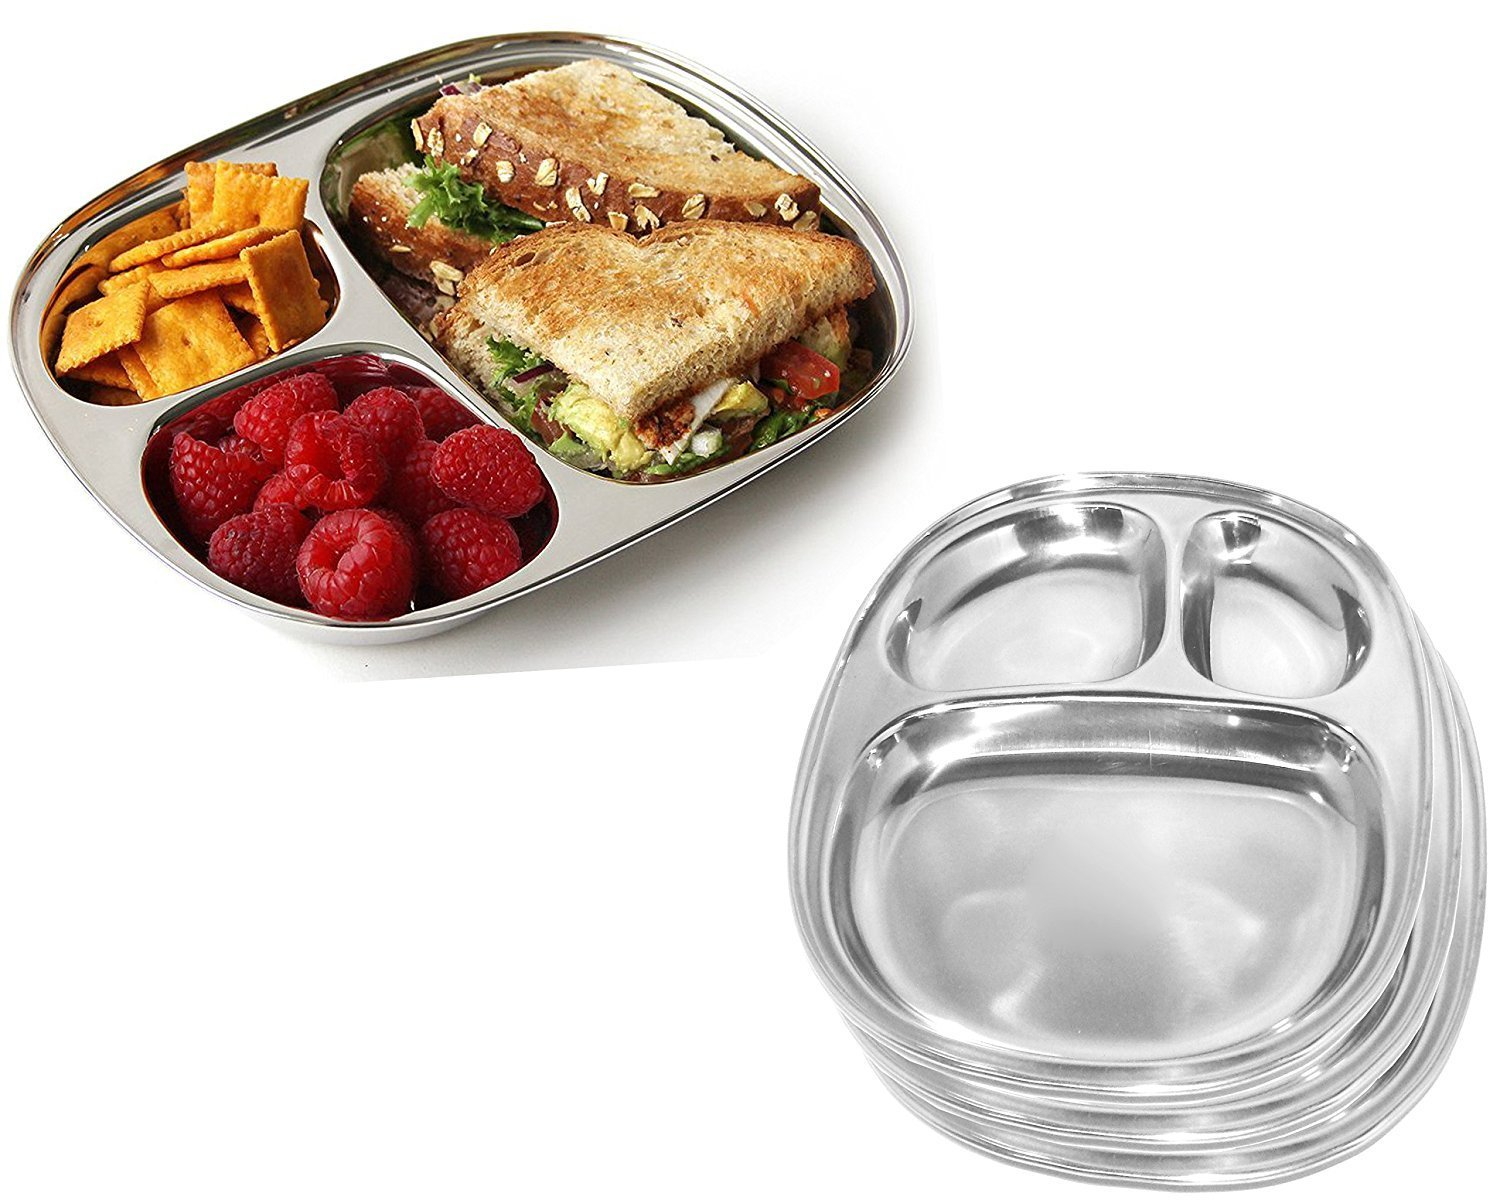 ROYAL SAPPHIRE Stainless Steel Multipurpose Dinner Plate| Compartment Plate 3 In 1 Set Of 4